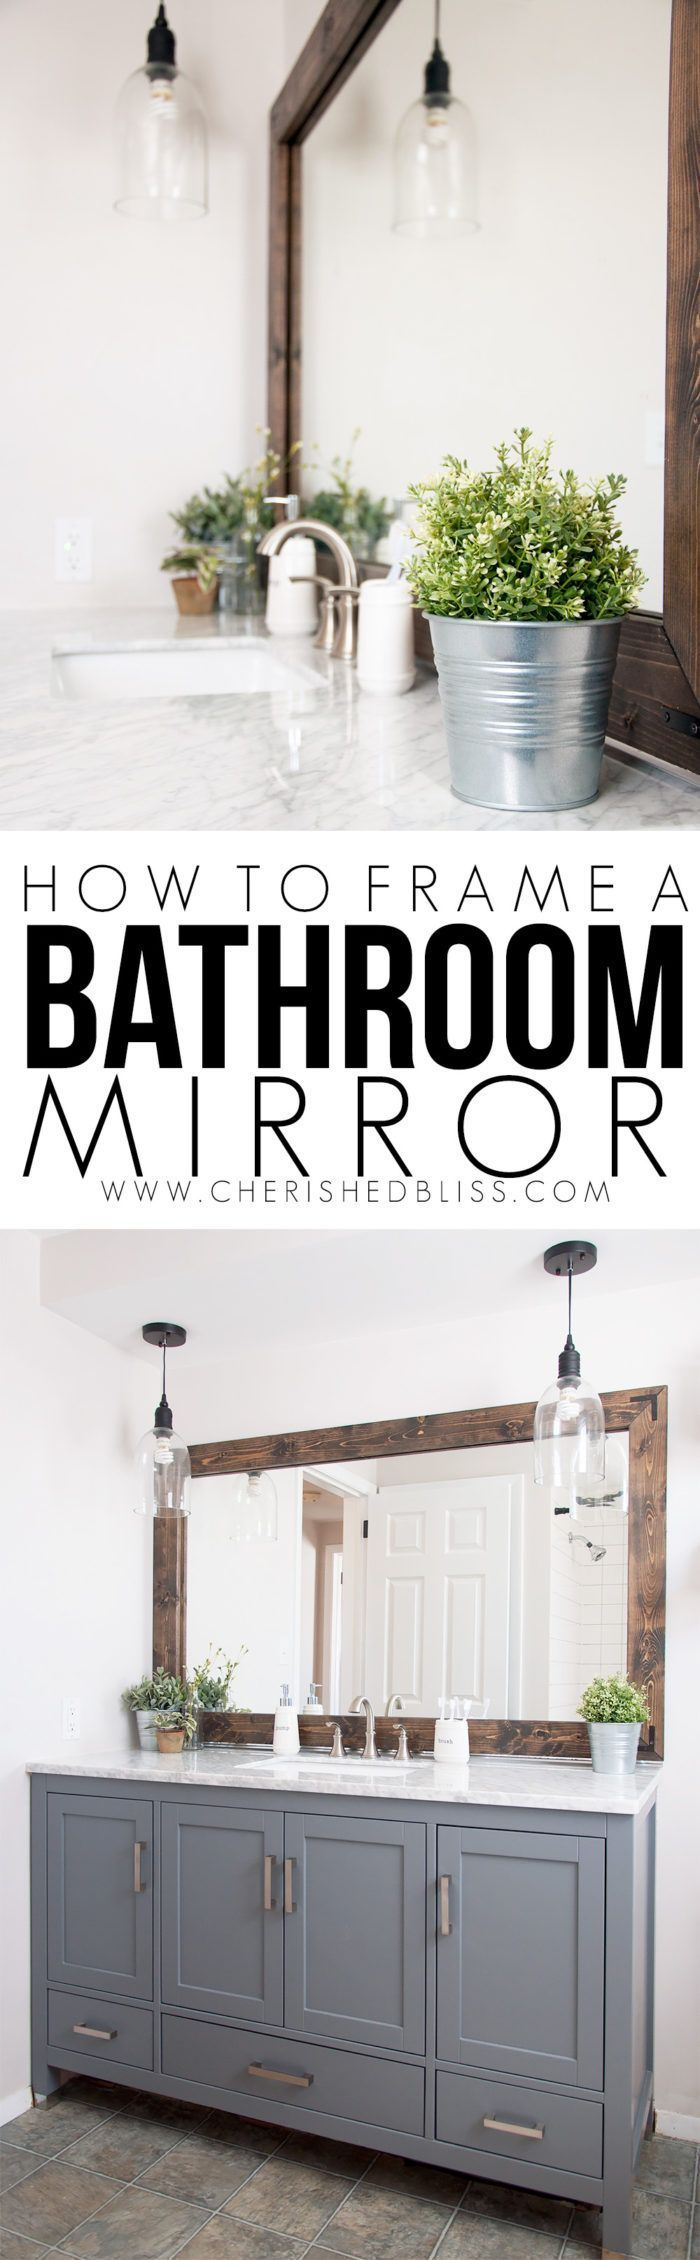 21+ Bathroom Mirror Ideas that are Beautiful and Decorative 2018 Midcentury modern bathroom Ikea bathroom Powder room Bathroom inspiration Specchio bagno Mirror ideas #MirrorIdeas #Bathroom #BathroomIdeas #BathroomMirror #SmallBathroom #SmallBathroomMirror #BathroomRemodel #PaintColors #Faucets #Sconces #BuilderGrade #AccentWalls #House #TowelRacks #Chandeliers #Colour #Fun #Tips #SlidingDoors #DressingTables #Pictures